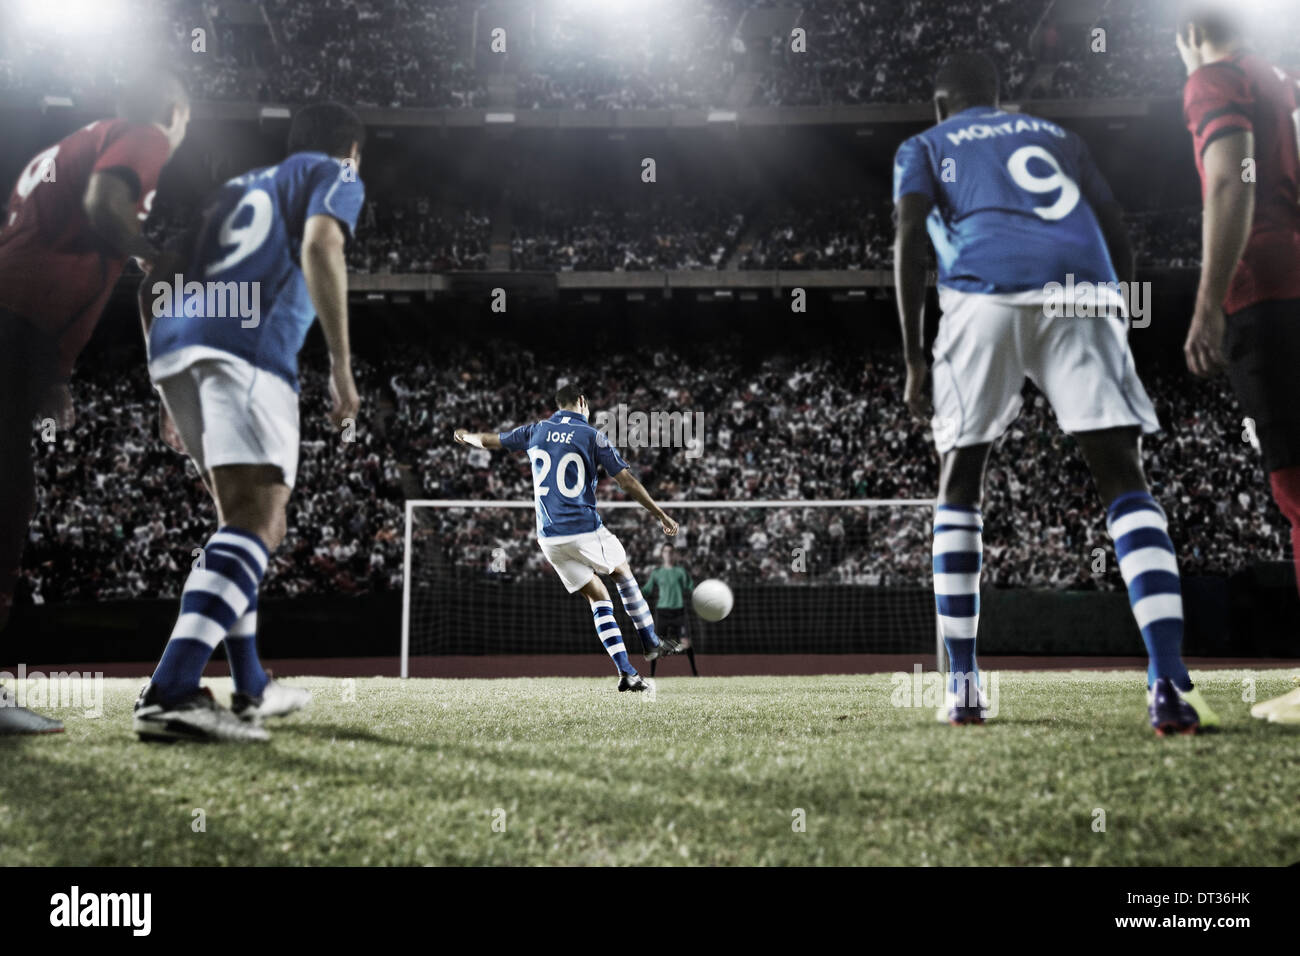 Soccer player kicking ball at goal - Stock Image